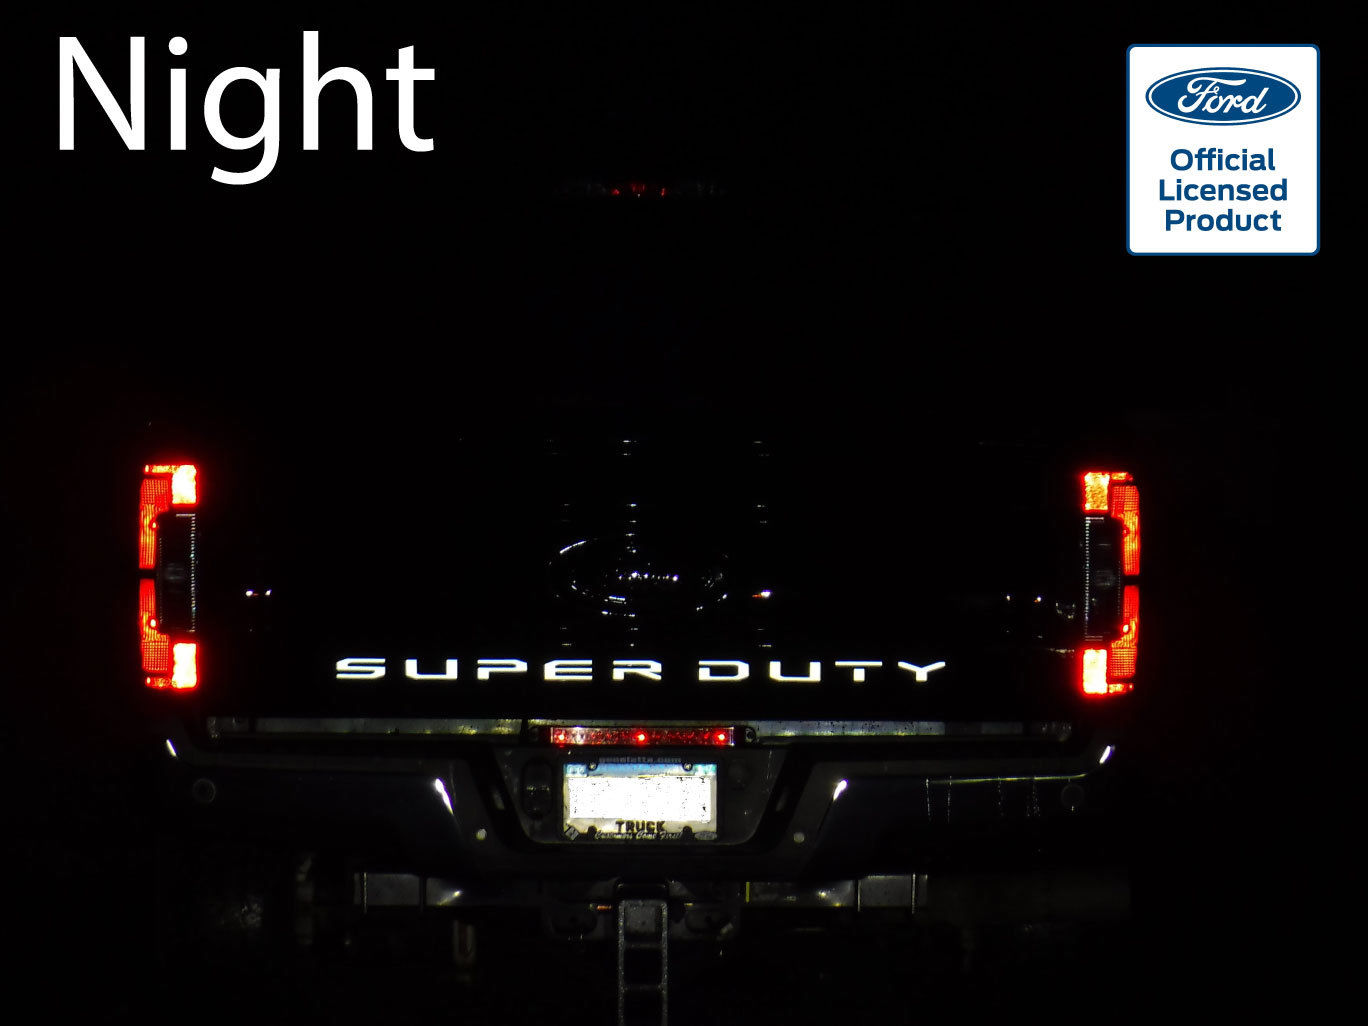 2017 Ford Super Duty Reflective Tailgate Letters Vinyl Decals F-250 F-350 F-450 – 1